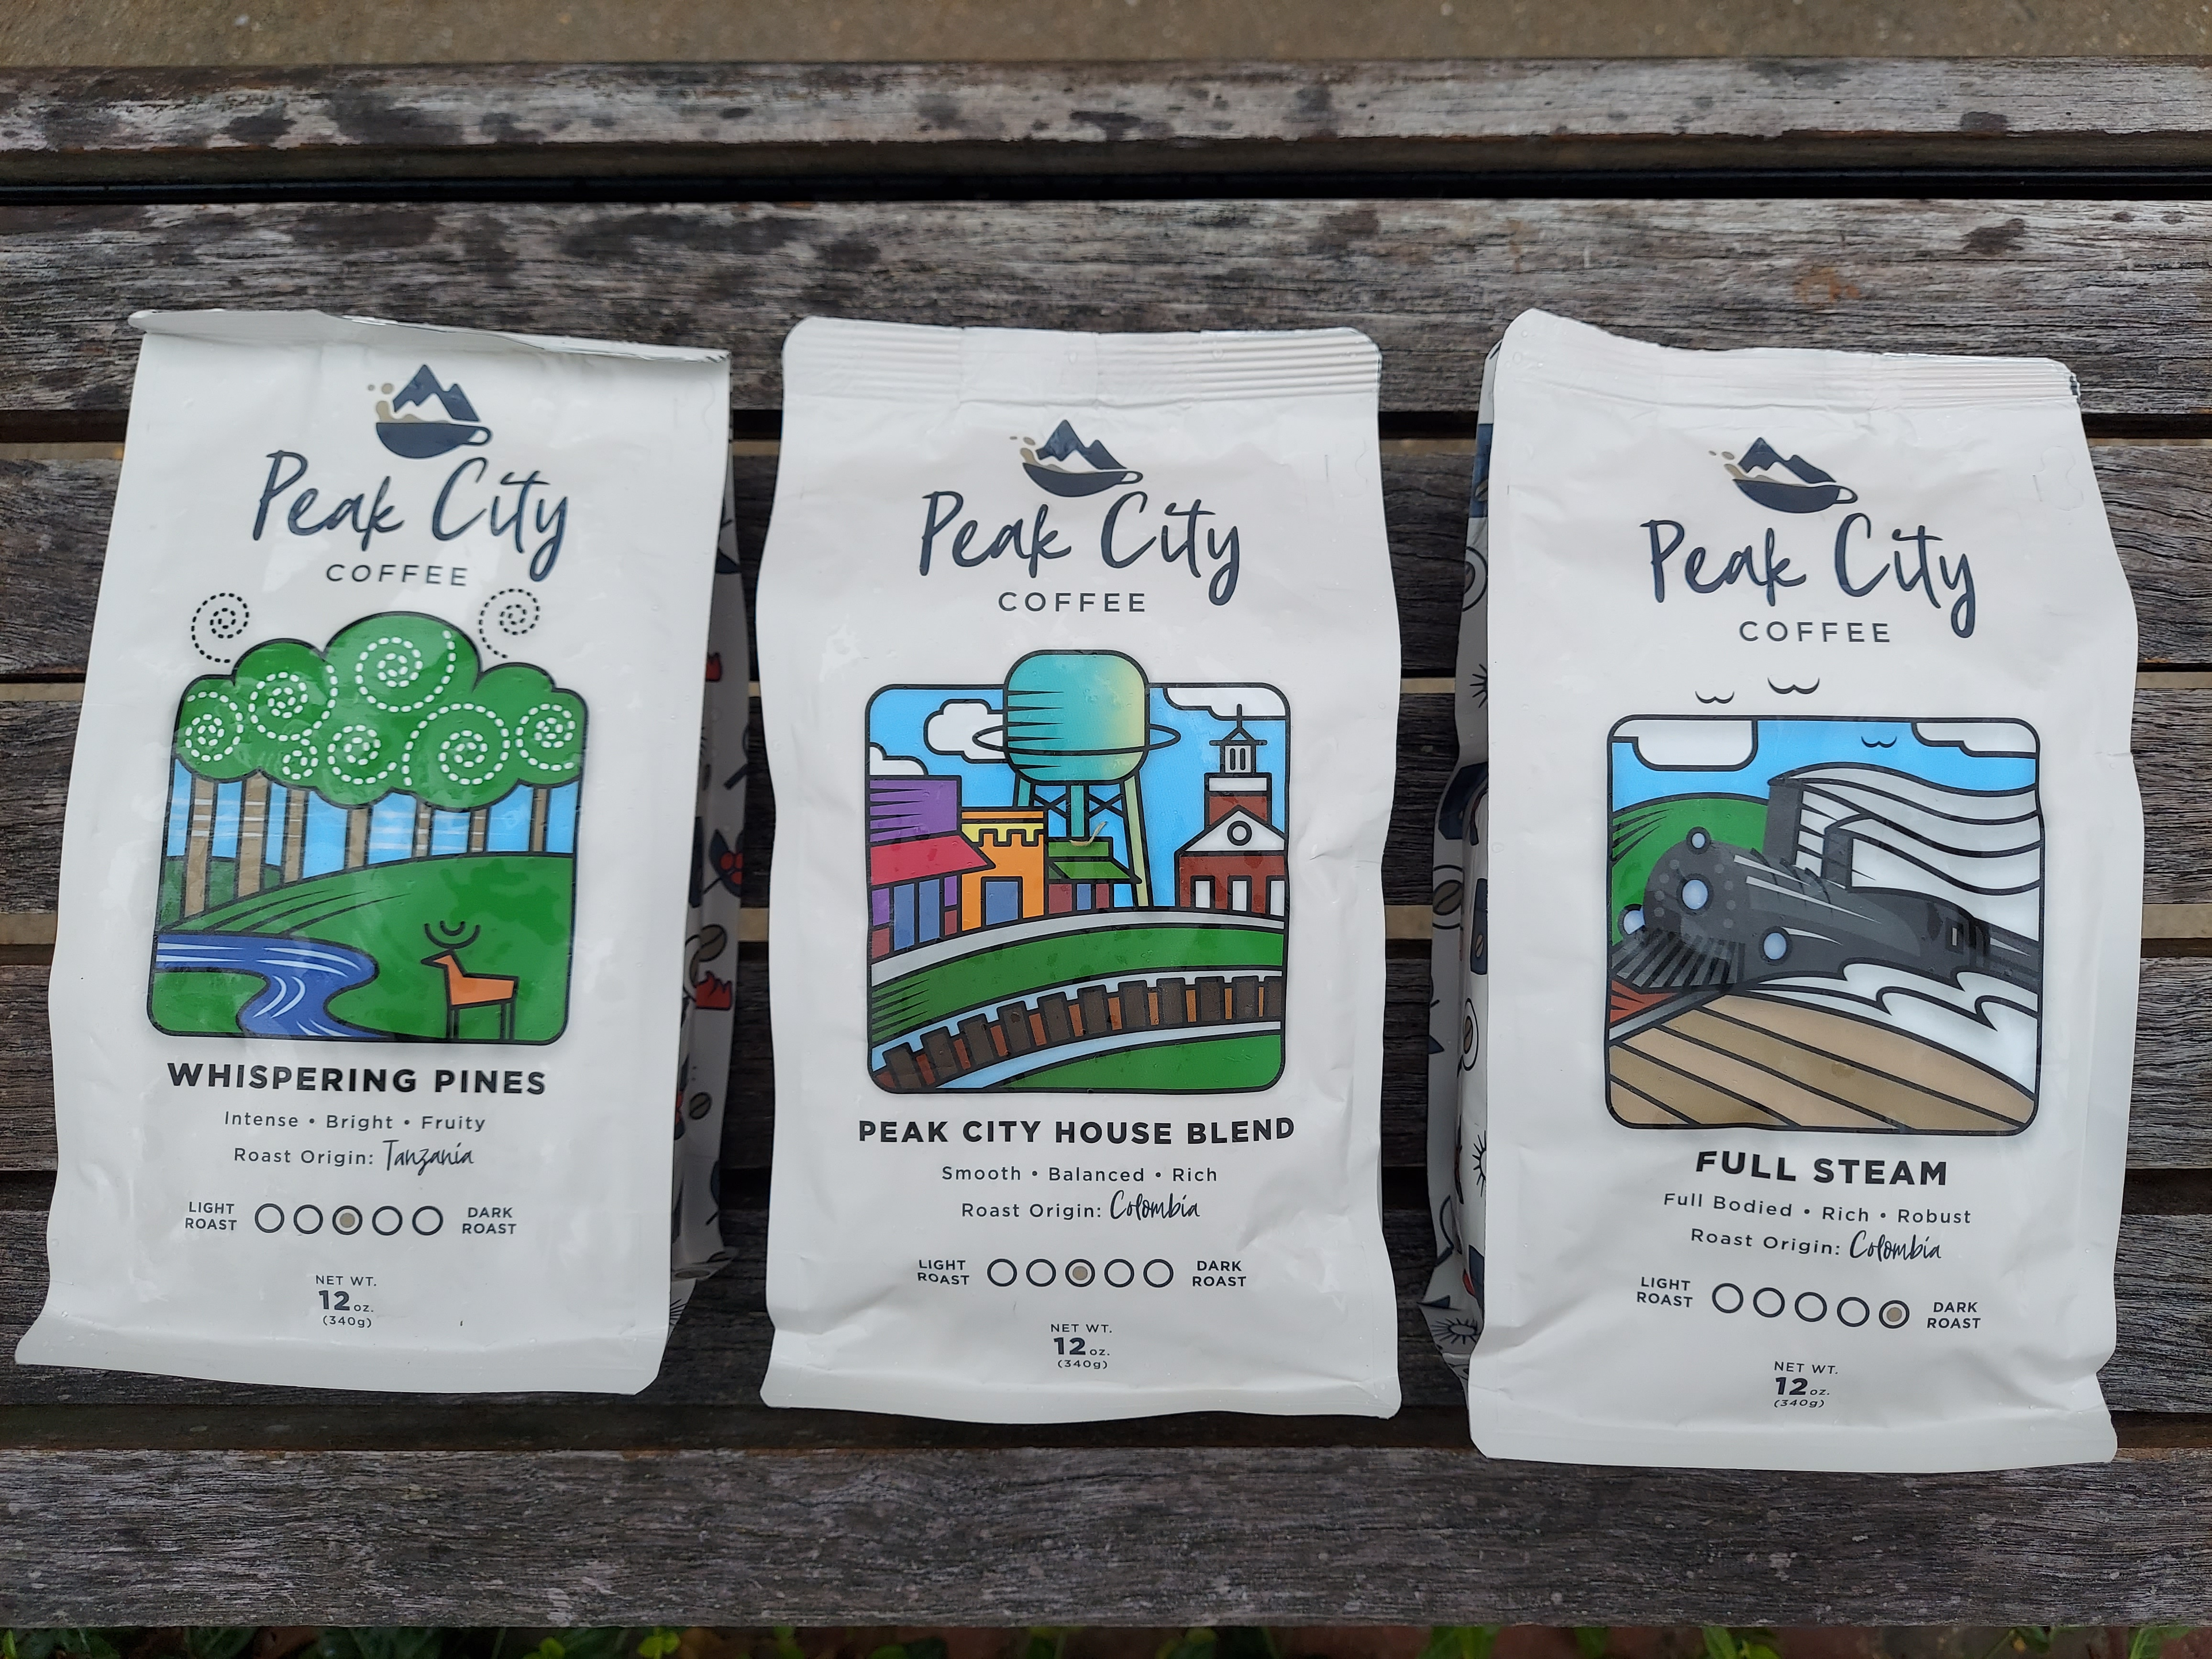 Peak City Coffee